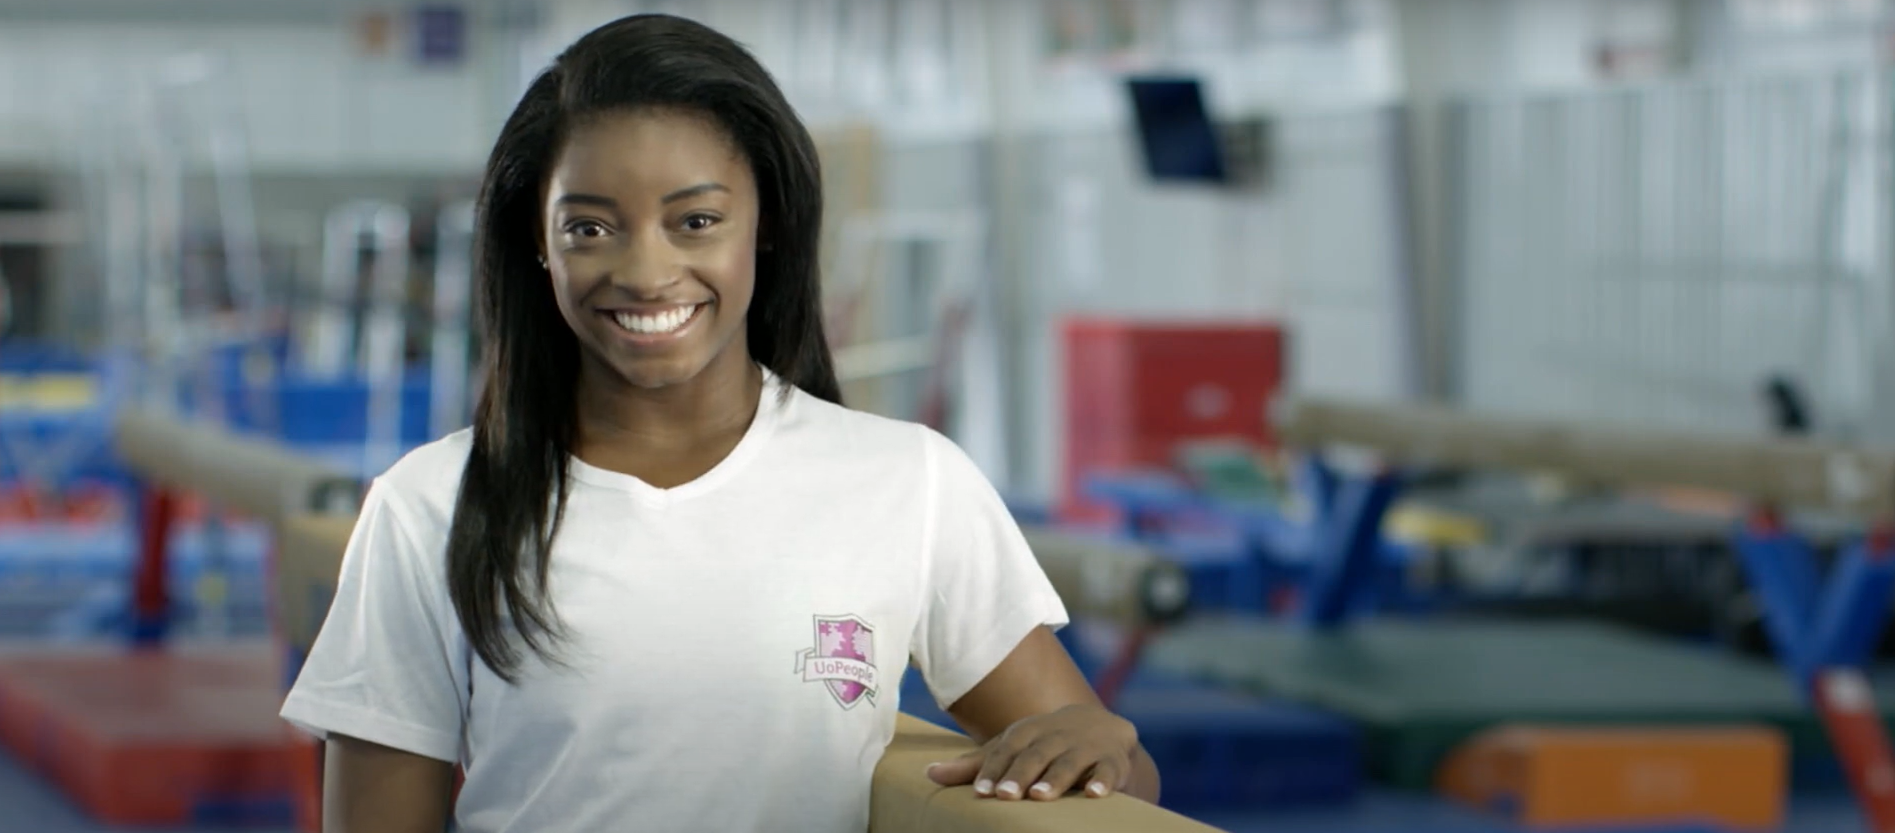 An Education Without Student Debt Has Even Olympic Champion Simone Biles Studying Online